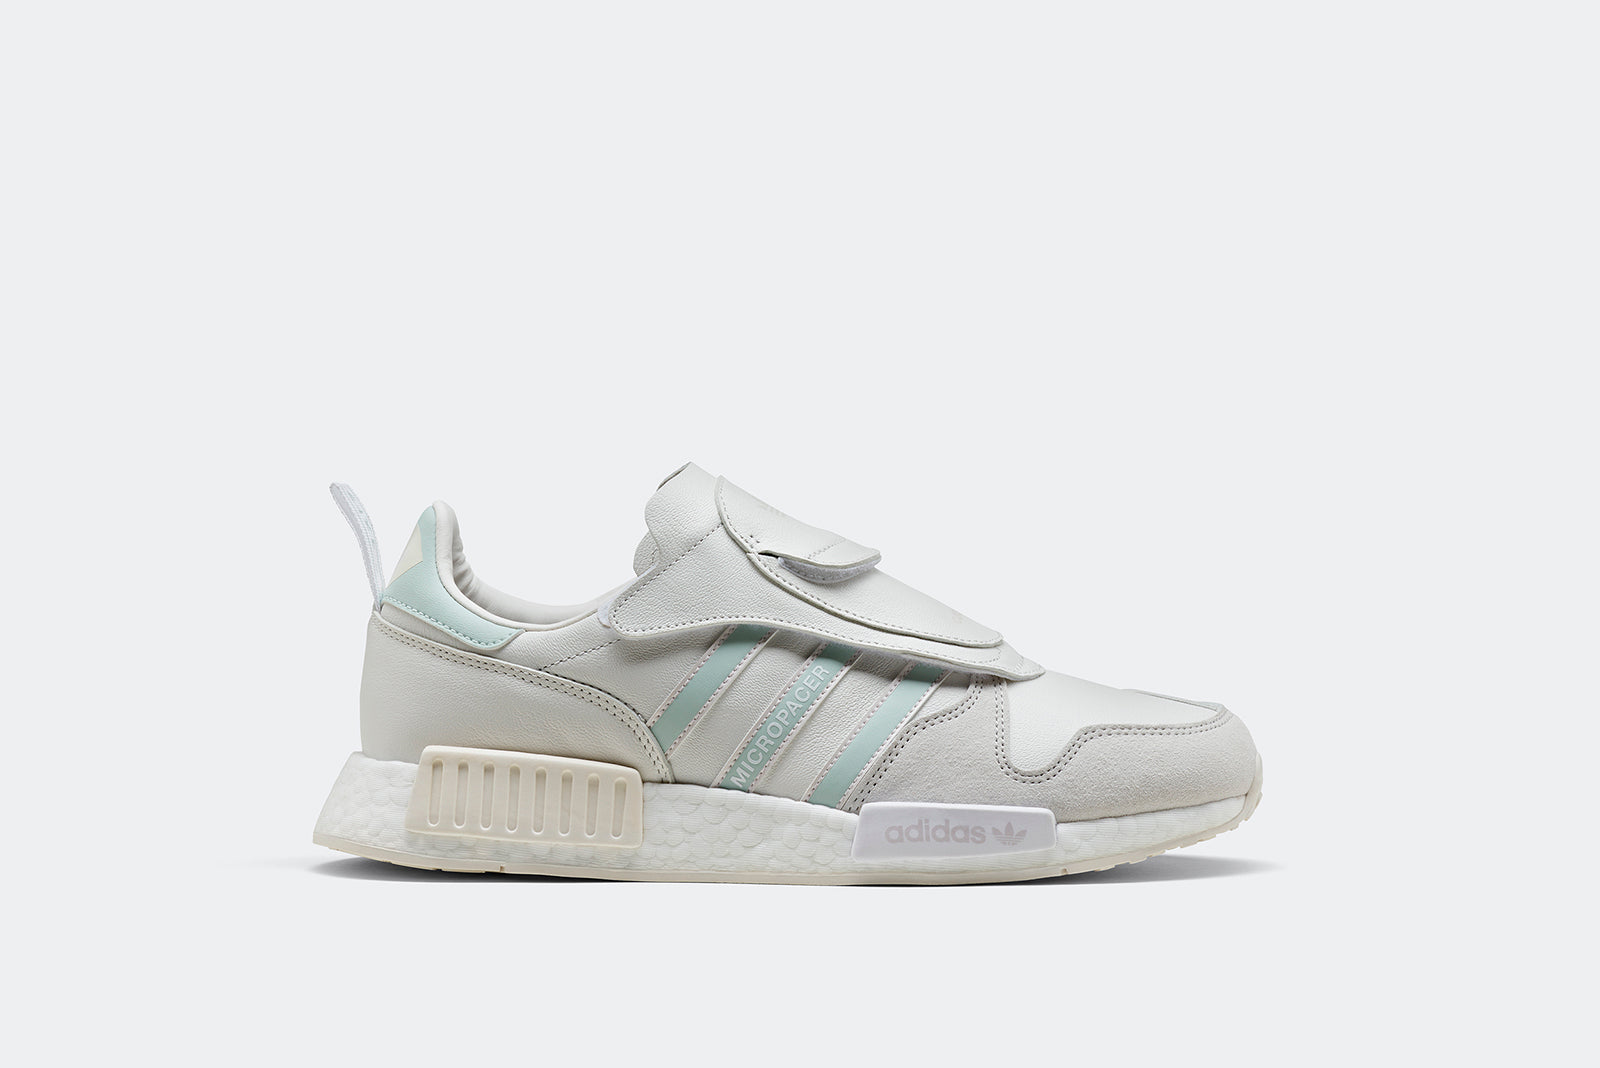 ab90092757b adidas Originals Micropacer x R1  Never Made  G28390 CLOWHI FTWWHT GREONE  Price  £159.00. Launch  Sunday 18th of November ONLINE  23 00GMT